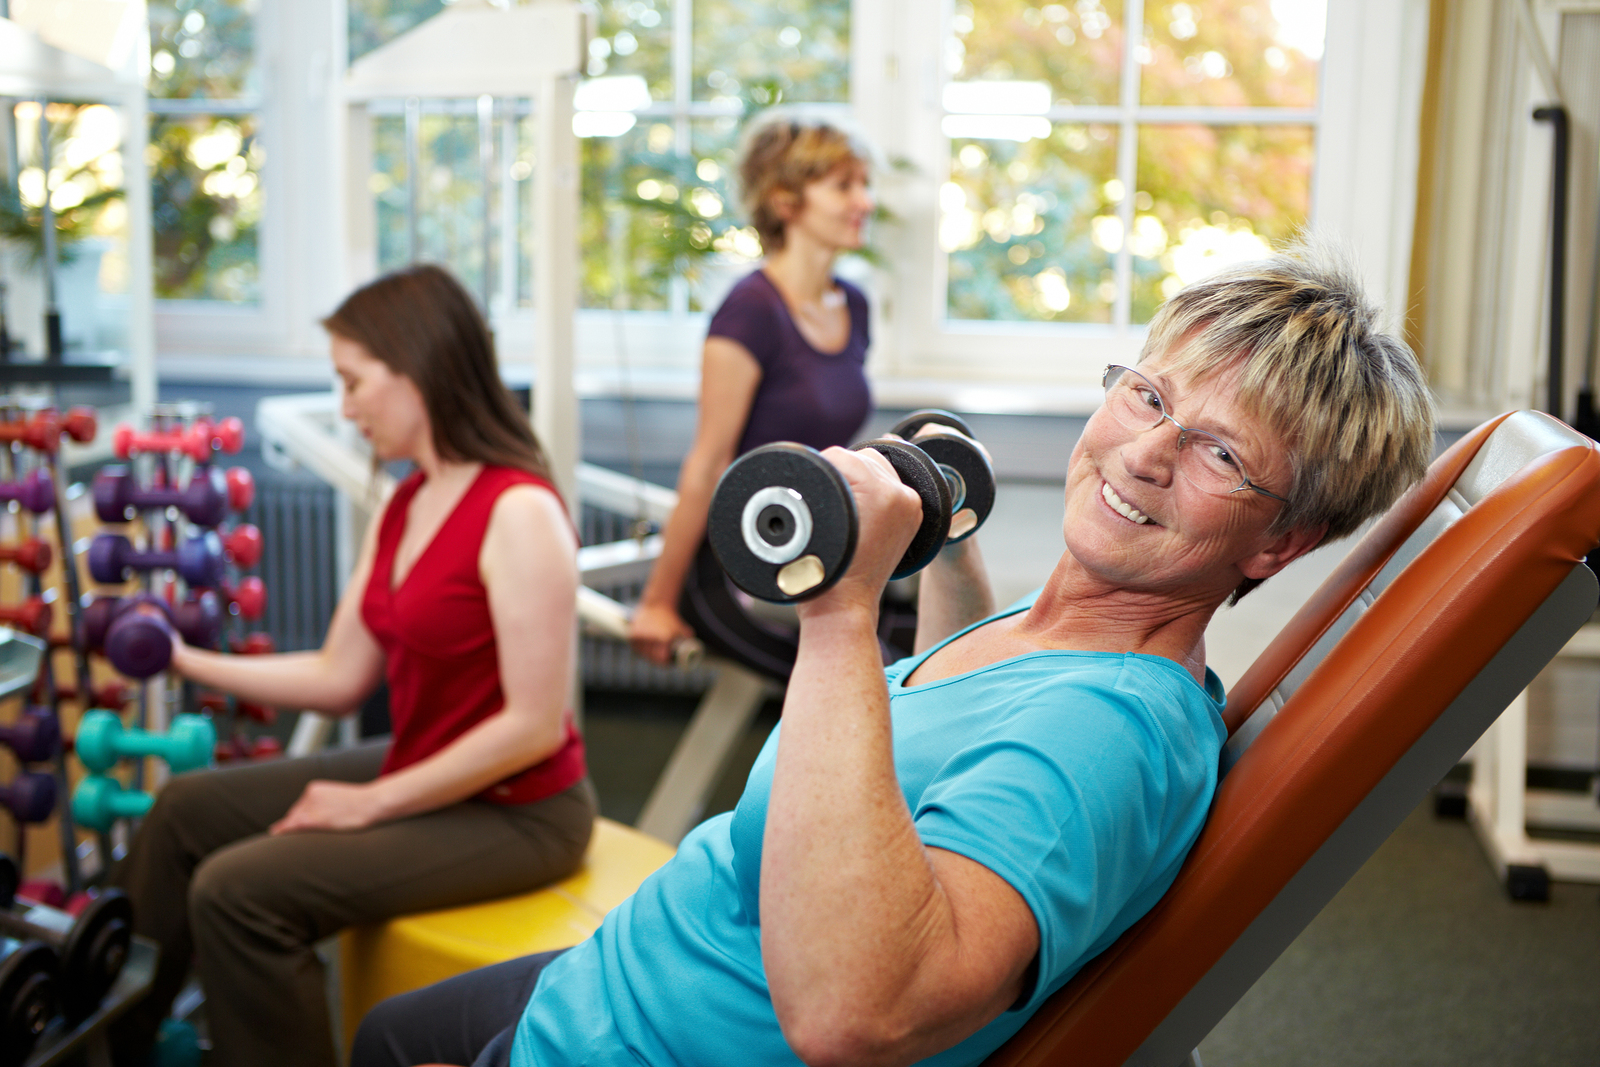 bigstock-Senior-Women-Lifting-Weights-11170169.jpg